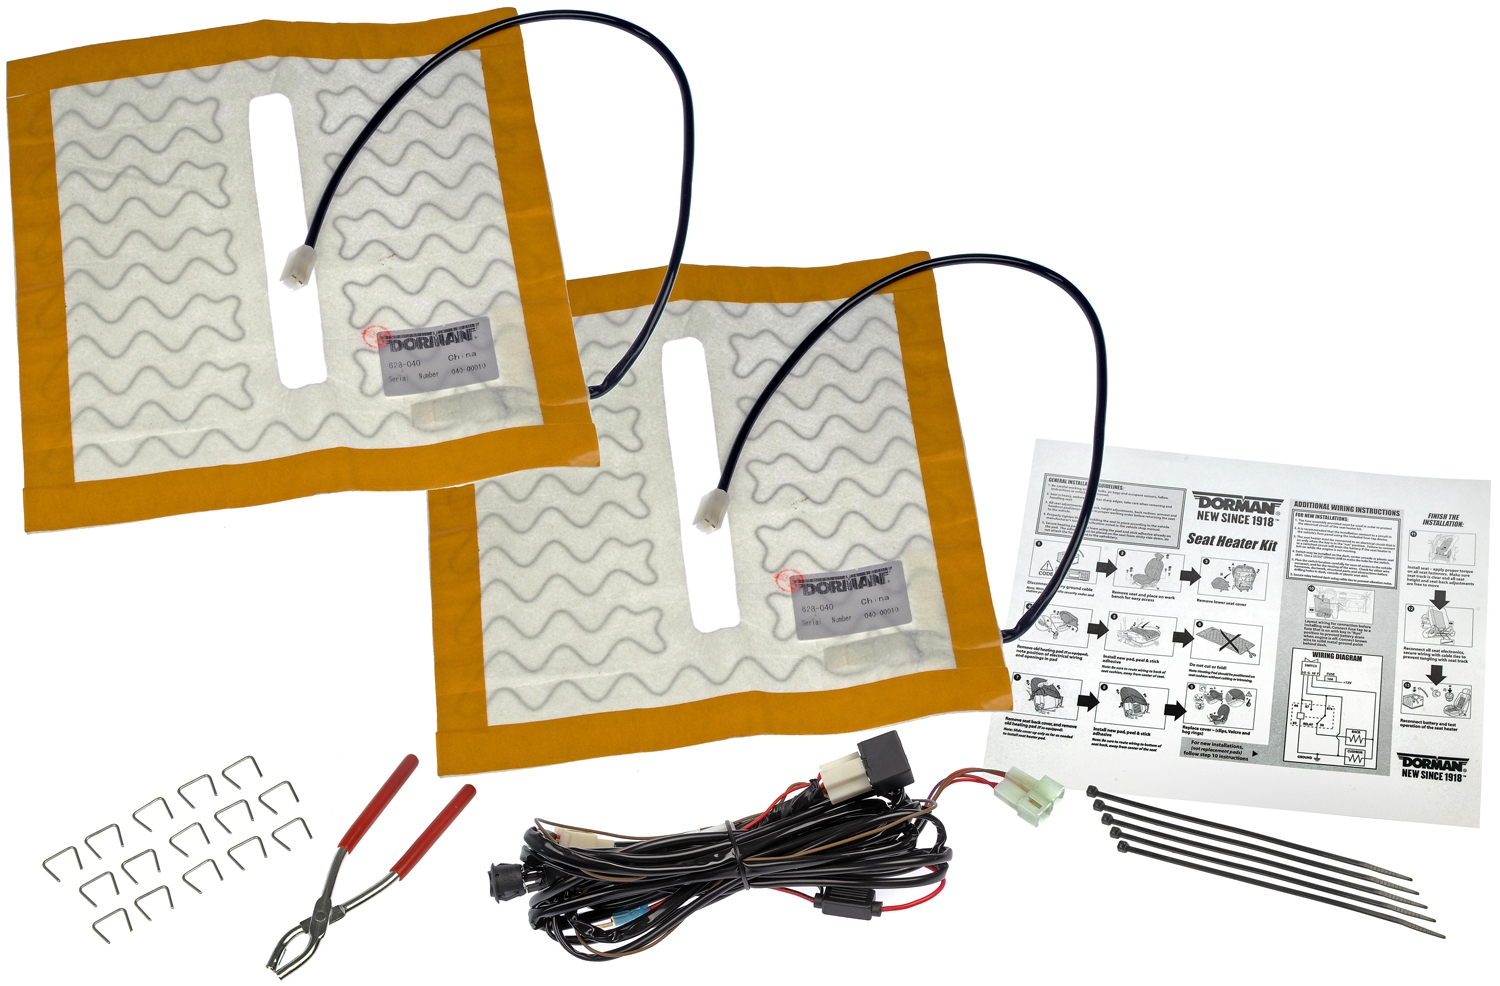 heater switch wiring harness wiring library system wiring harness dorman (oe solutions) 628 040 seat heater oe solutions (tm) permanently